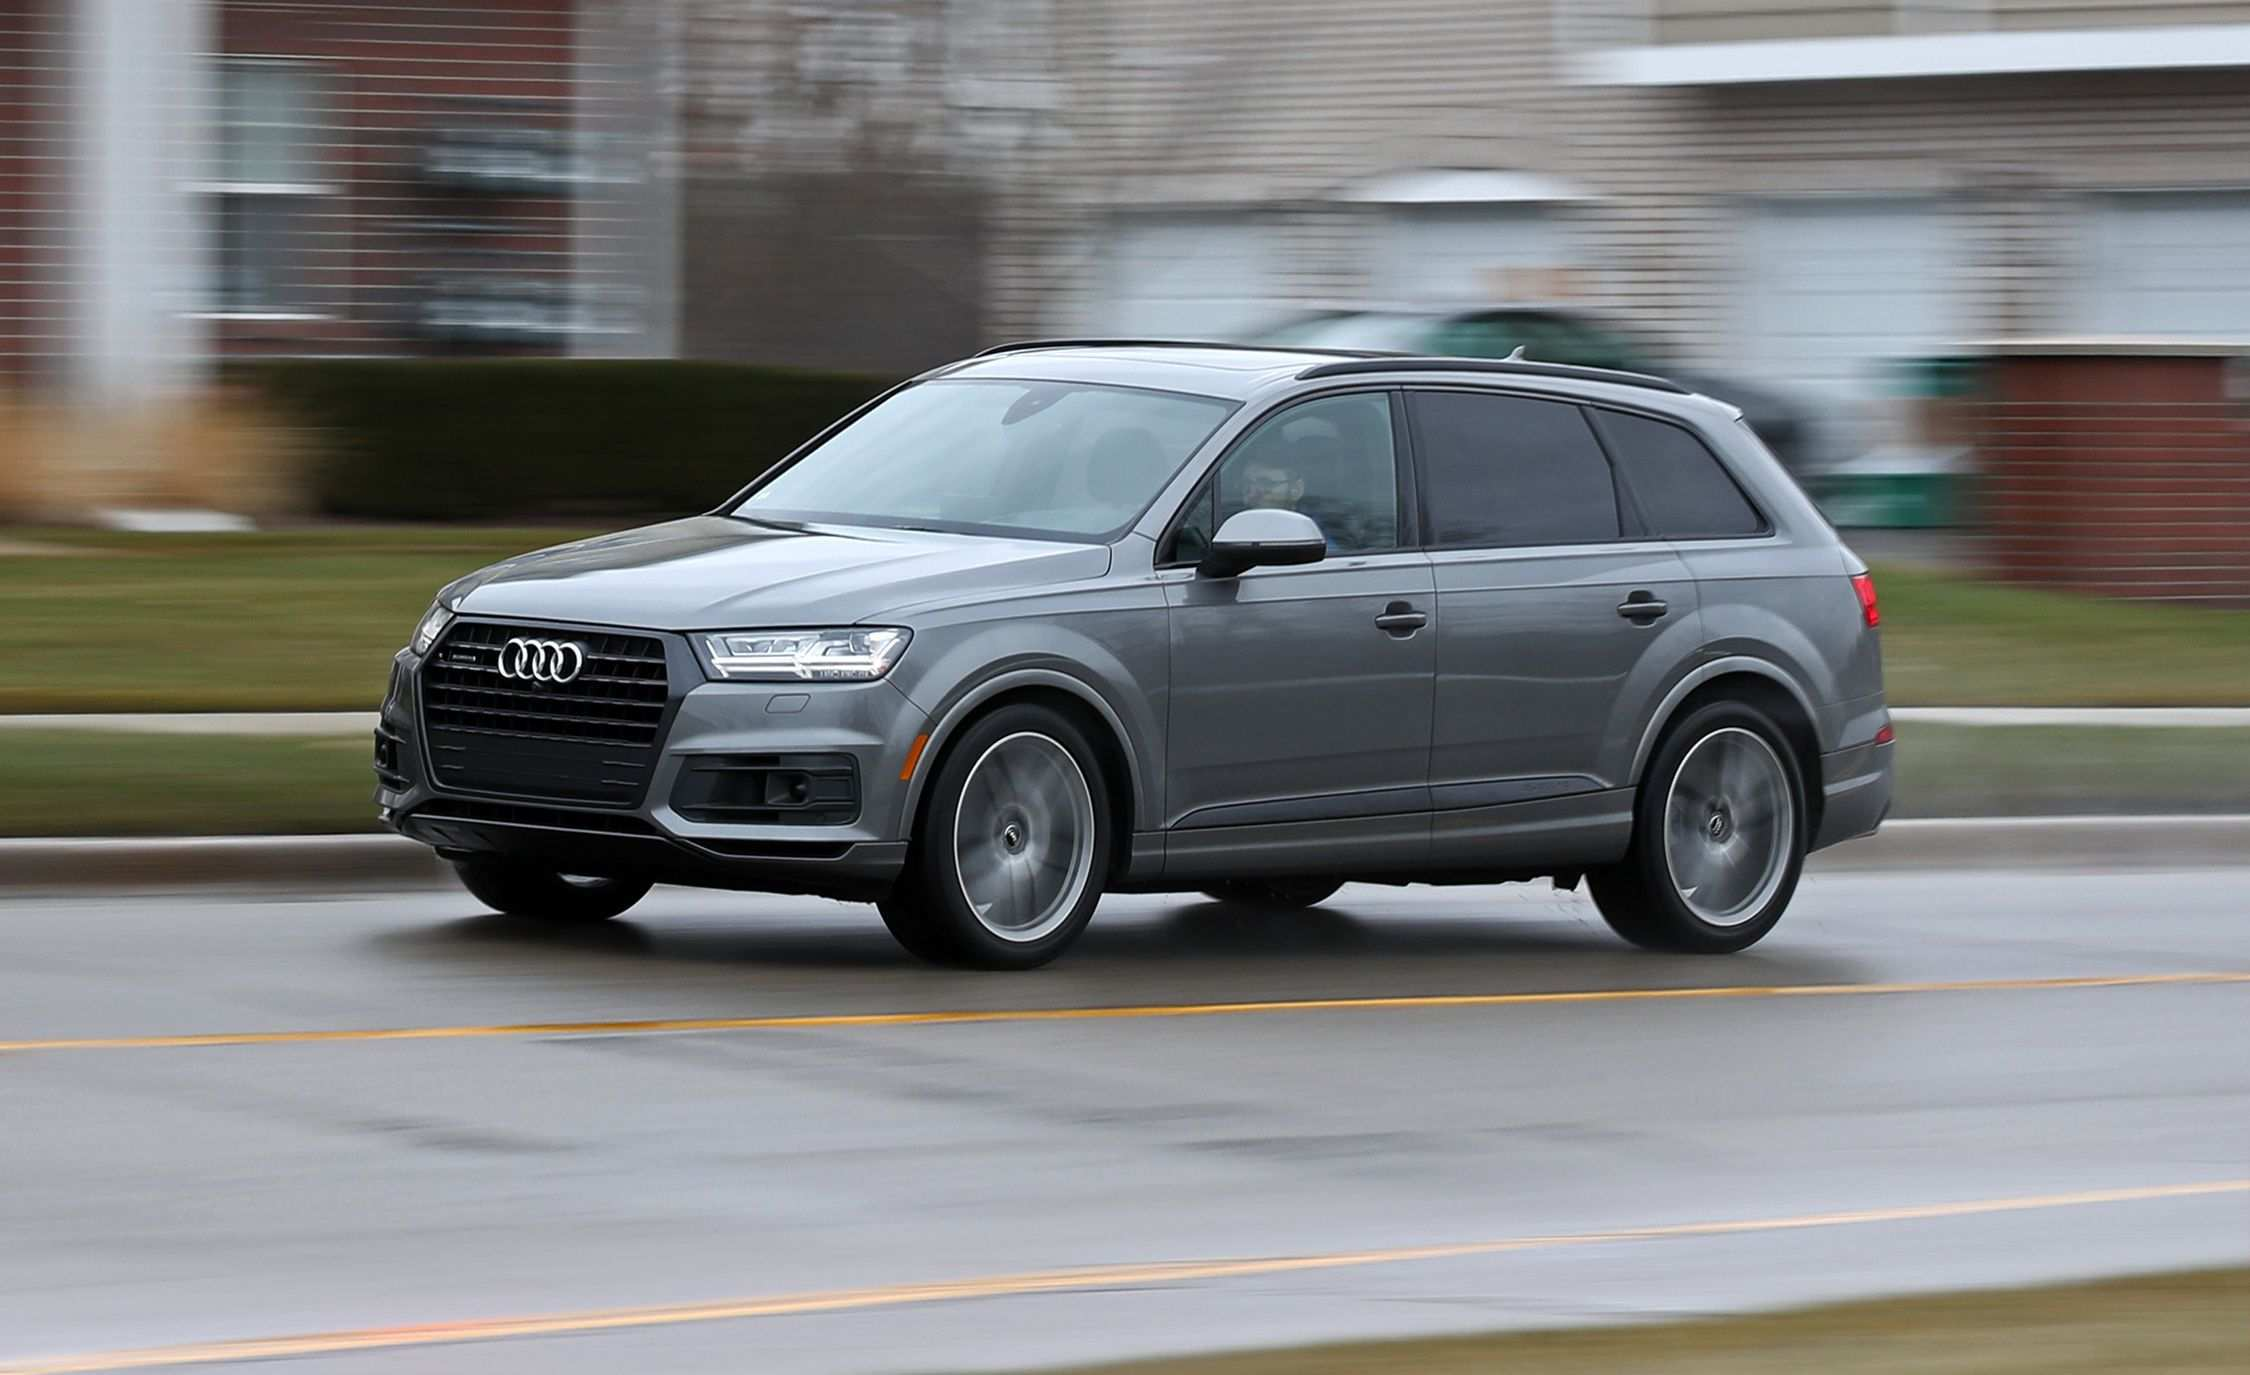 45 Concept of 2020 Audi Q7 Specs and Review by 2020 Audi Q7